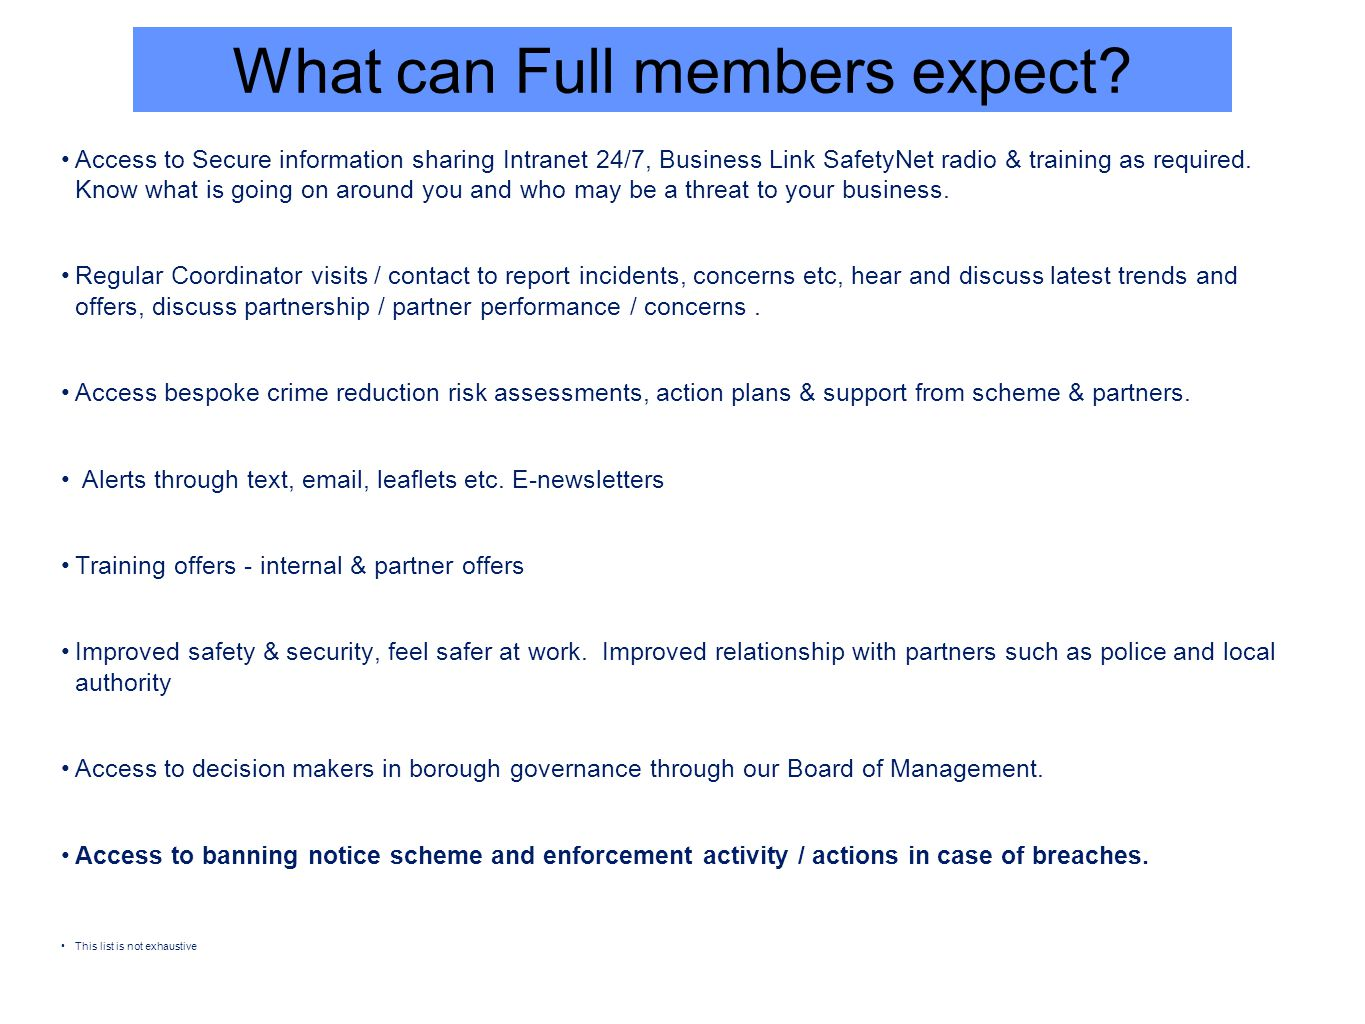 What can Full members expect? Access to Secure information sharing Intranet 24/7, Business Link SafetyNet radio & training as required. Know what is g